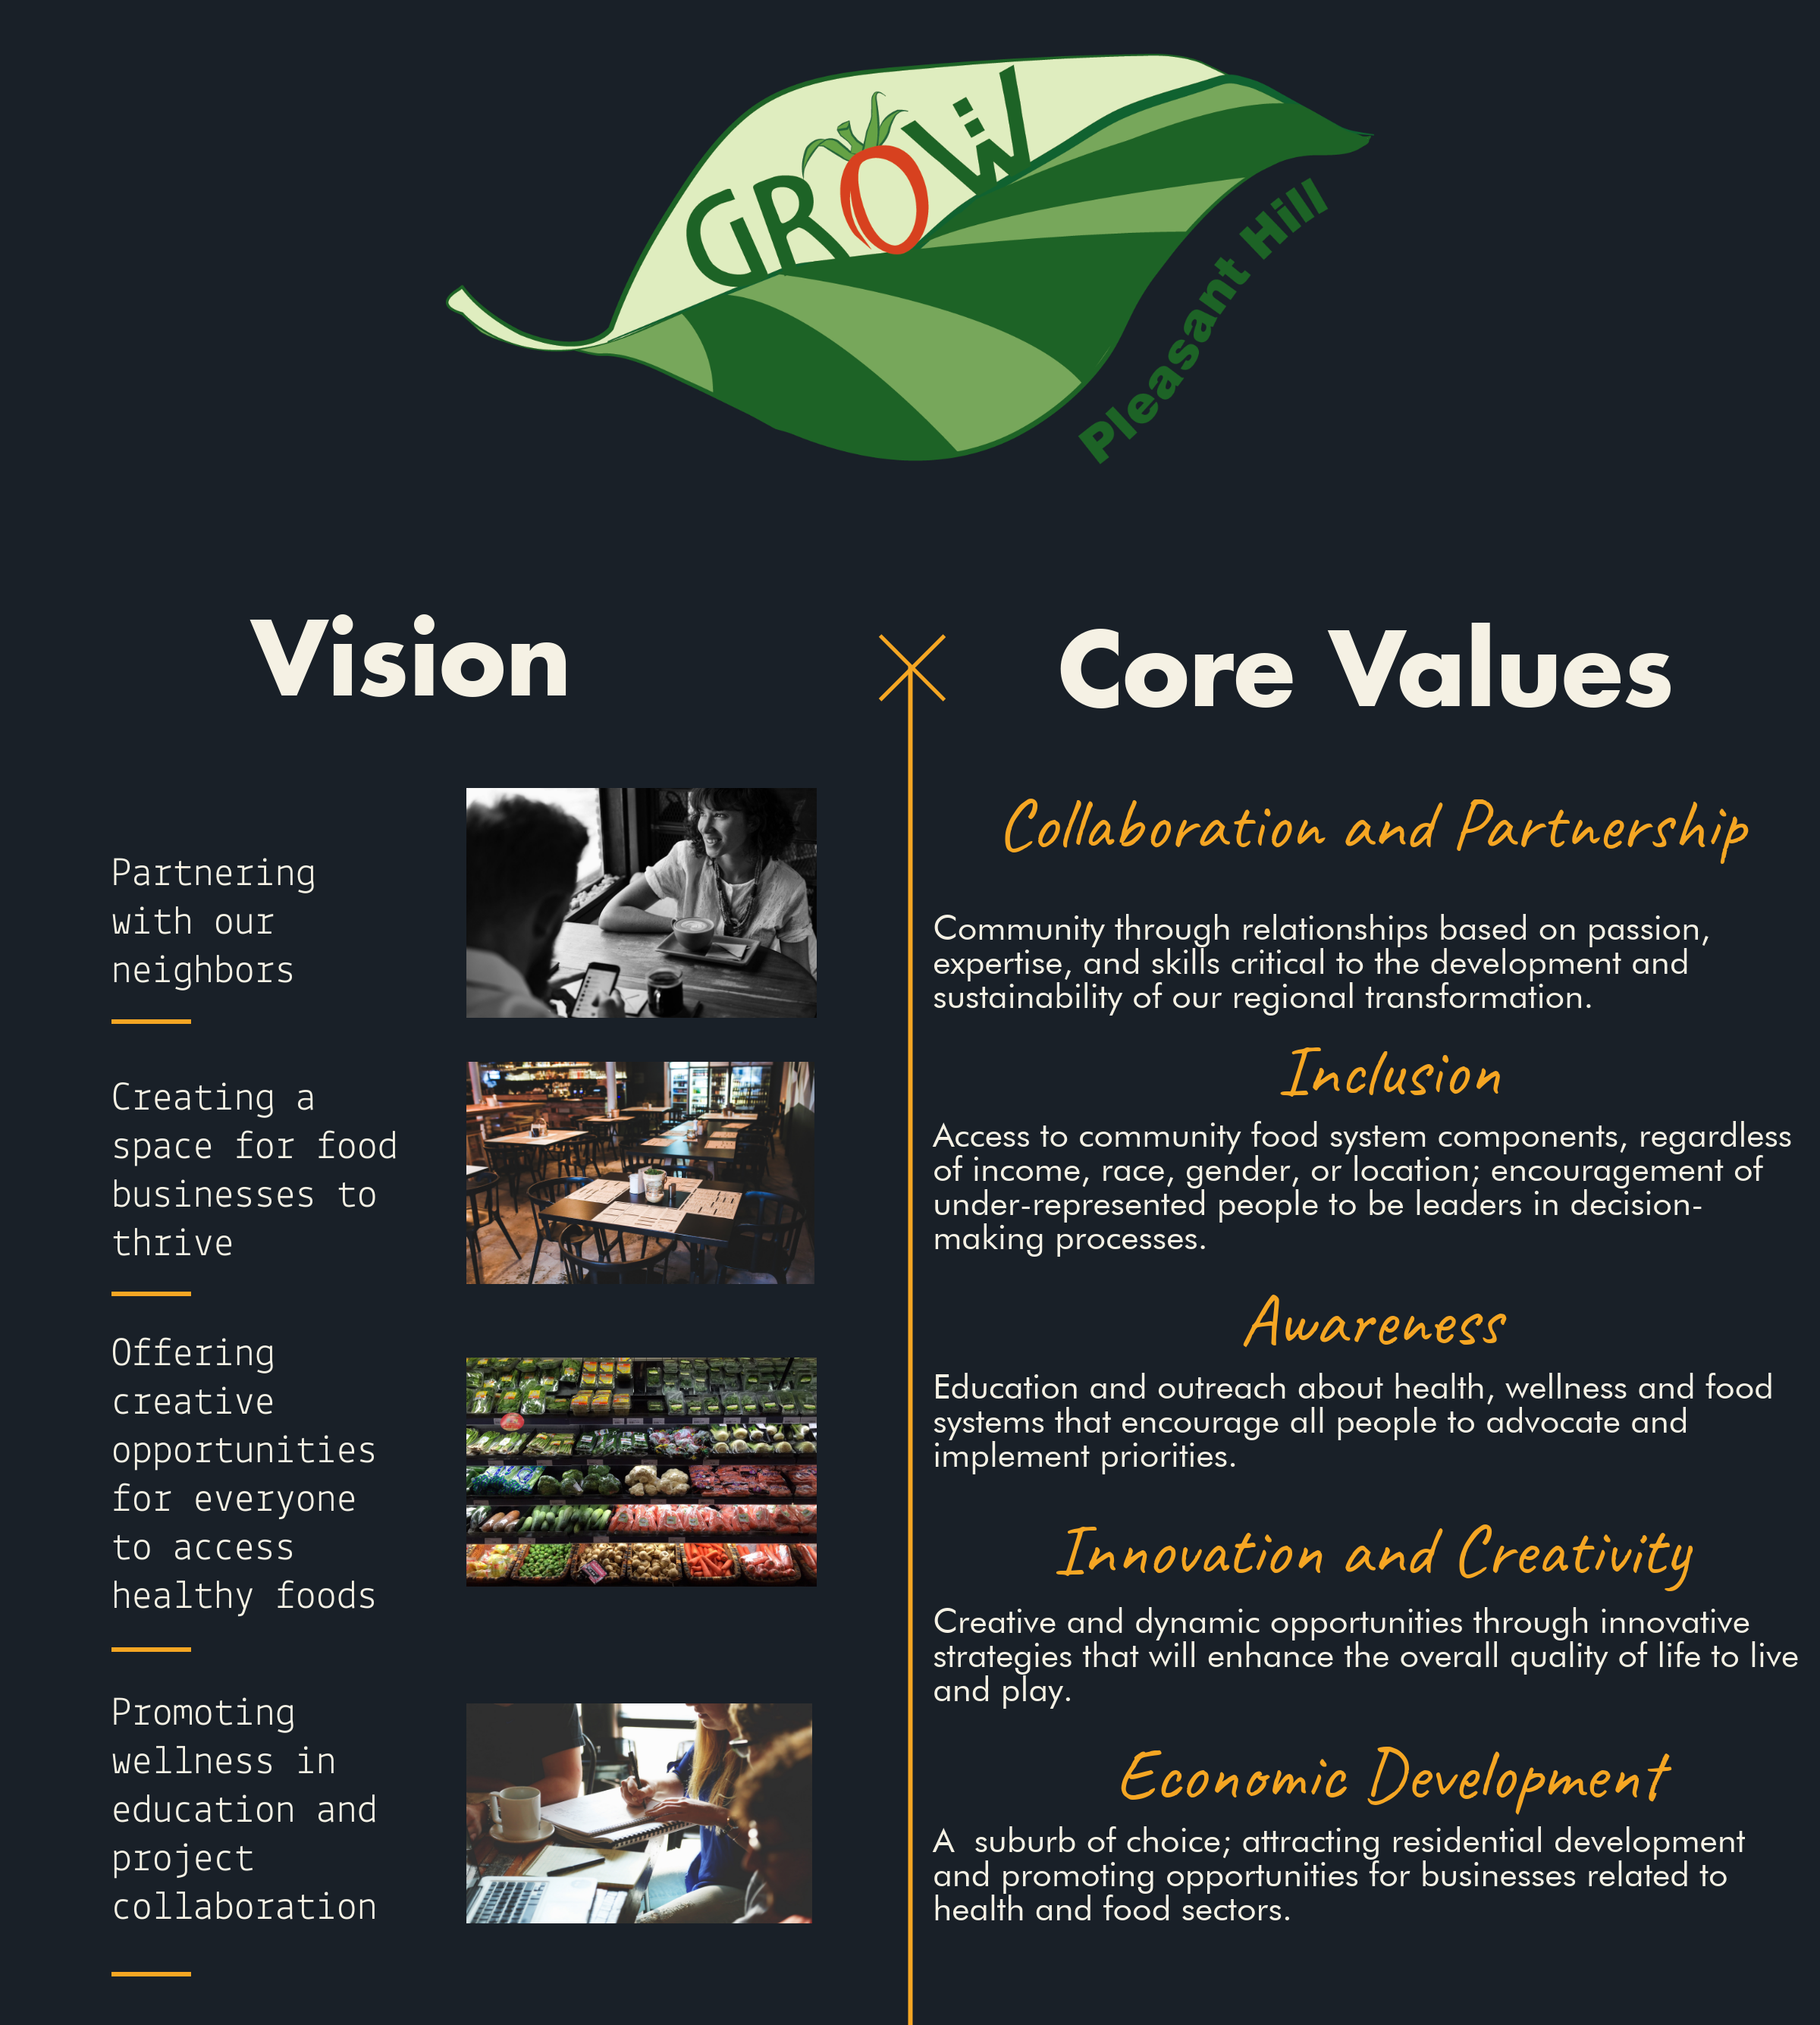 Grow Pleasant Hill Core Values and Vision